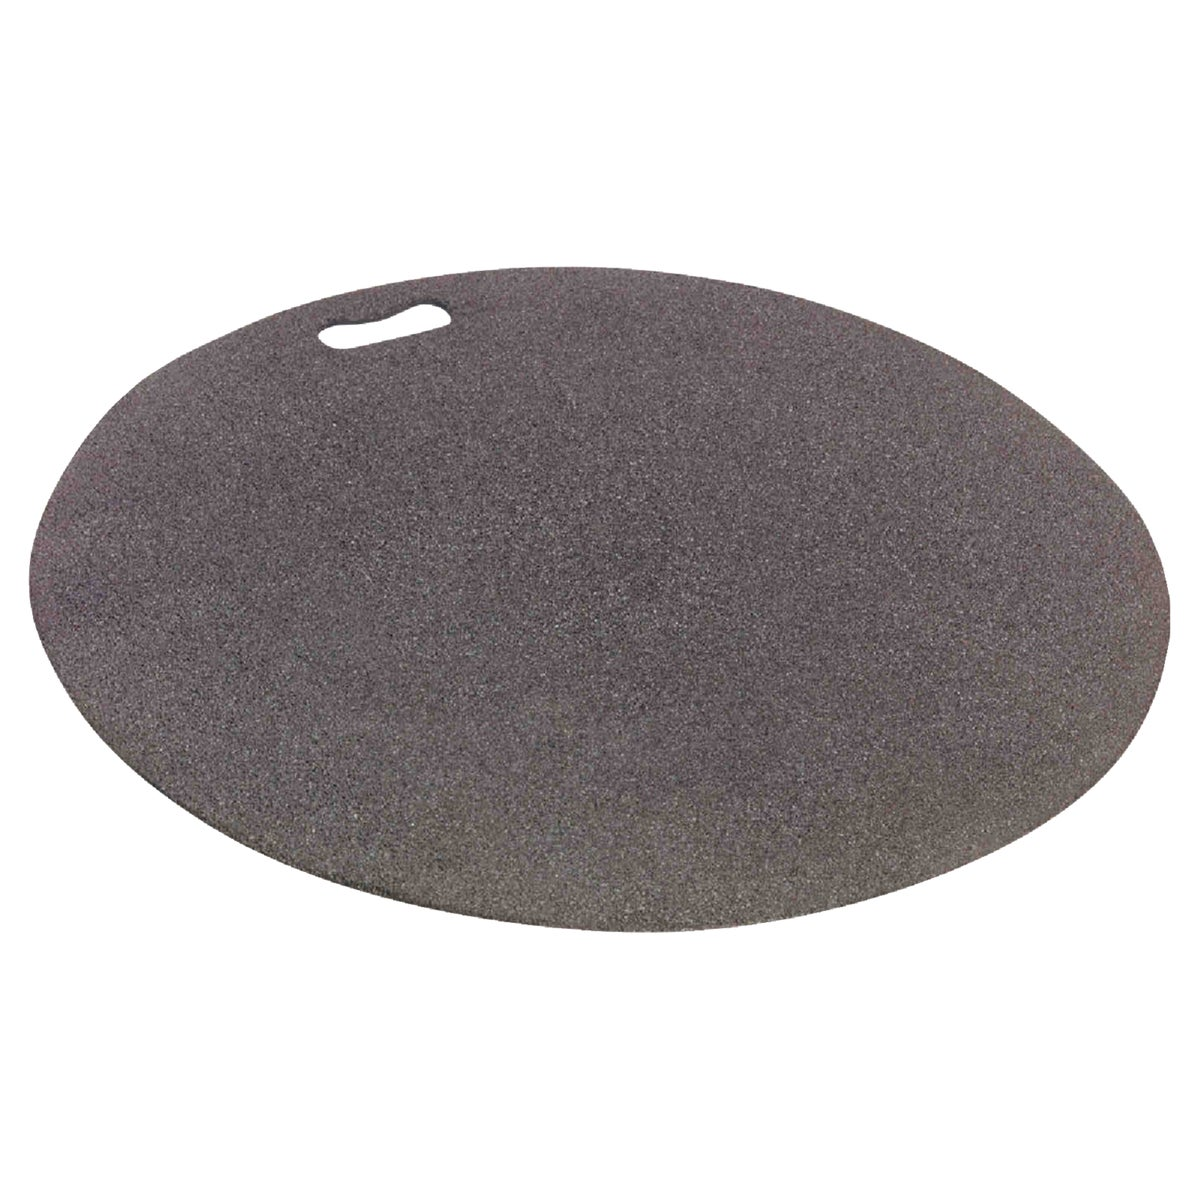 BROWN ROUND GRILL PAD - GP-30 by Diversitech Corp